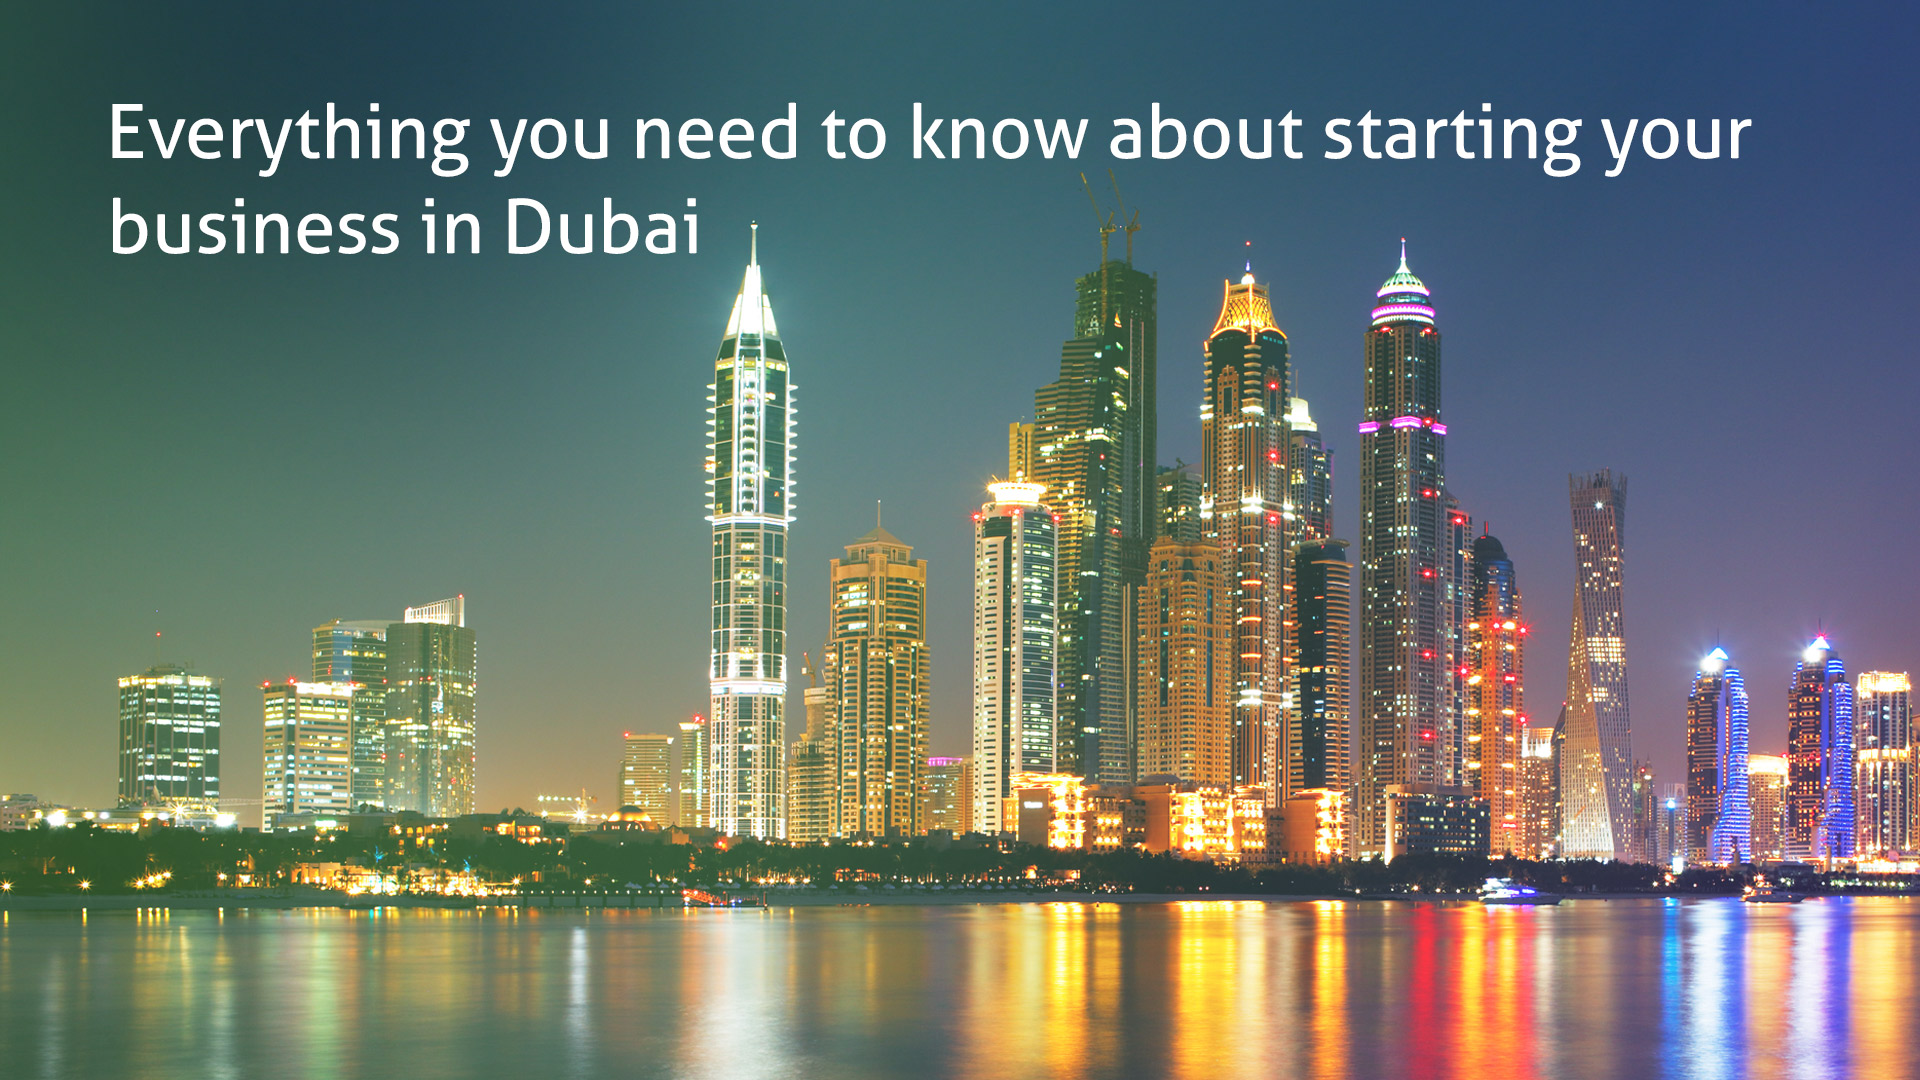 Everything you need to know about starting your business in Dubai